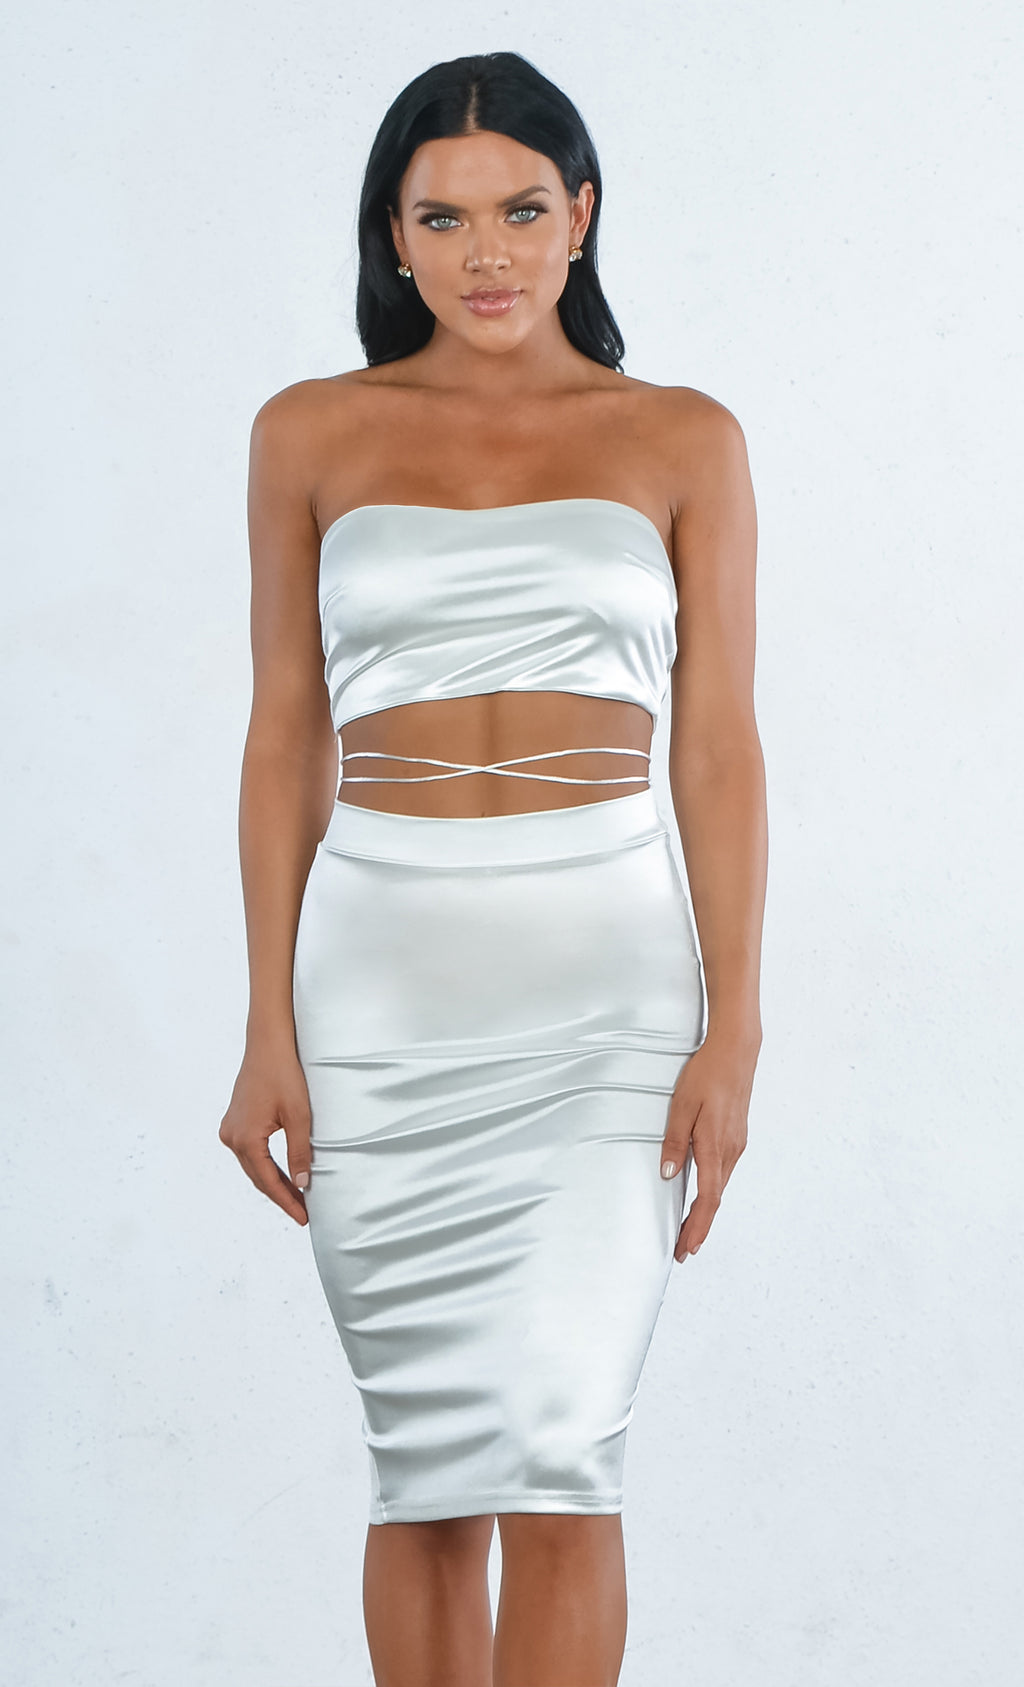 Indie XO Take You Higher White Satin Criss Cross Two Piece Midi Dress Strapless Bandeau Top Set